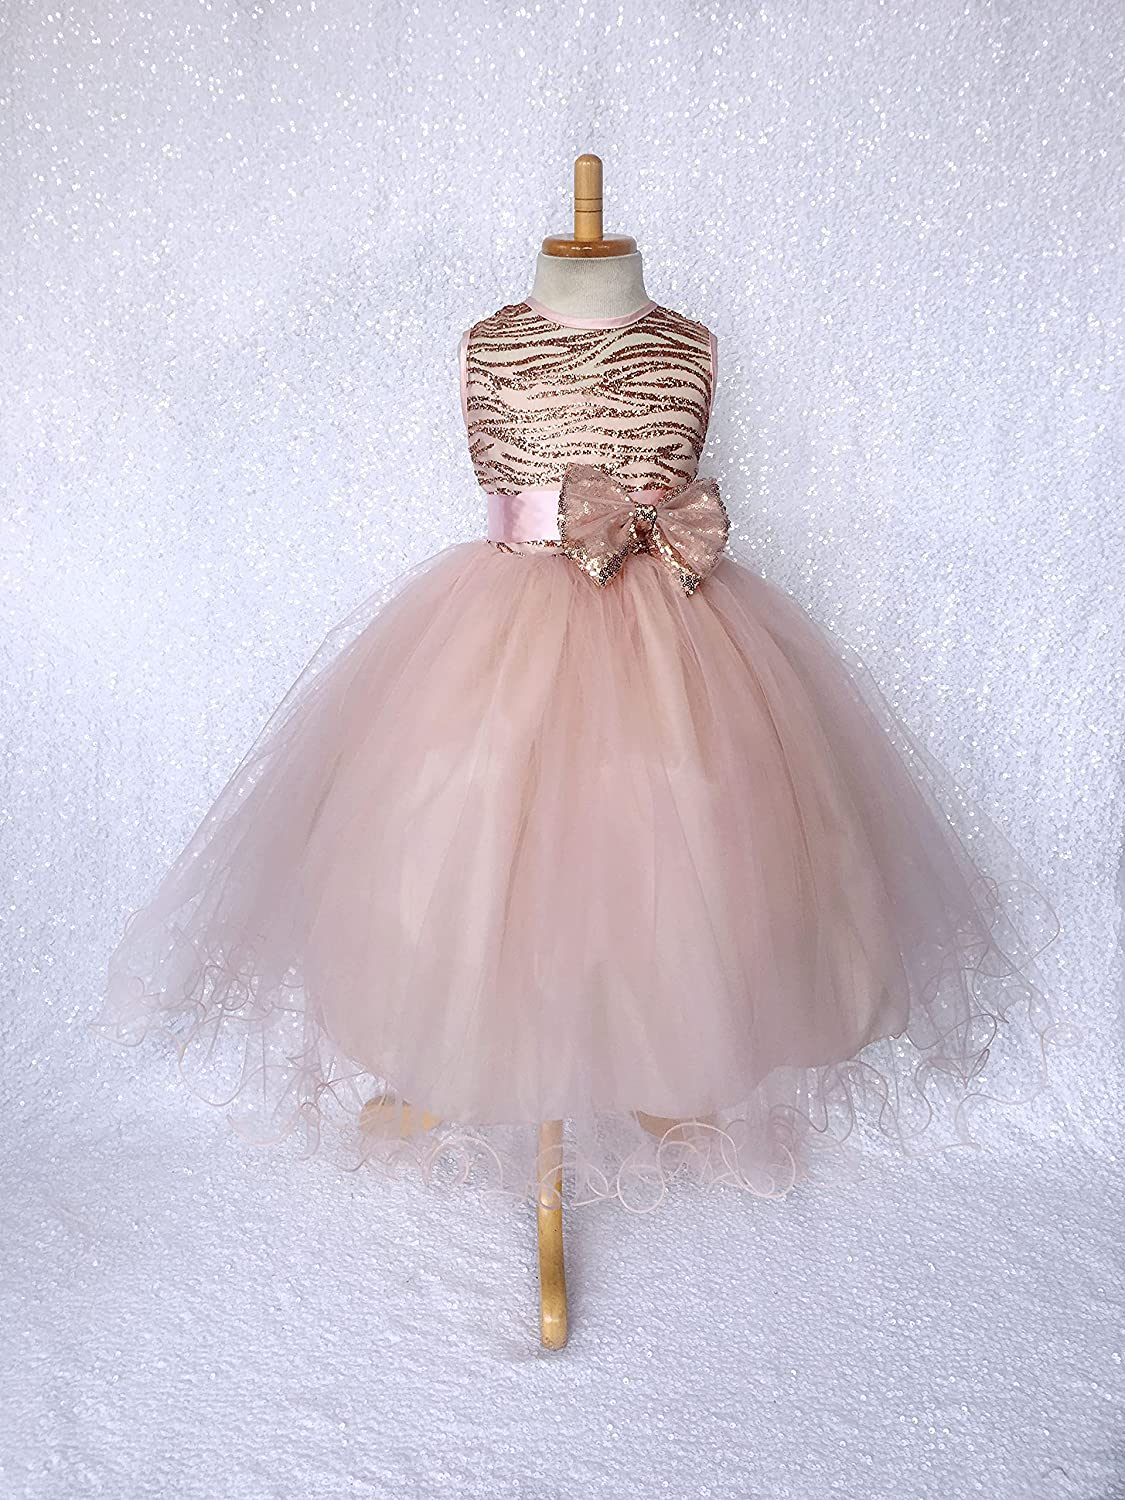 Rose Gold Glitter Max 52% Max 47% OFF OFF Striped Mesh 2 Blush Layer Dres Tulle Birthday